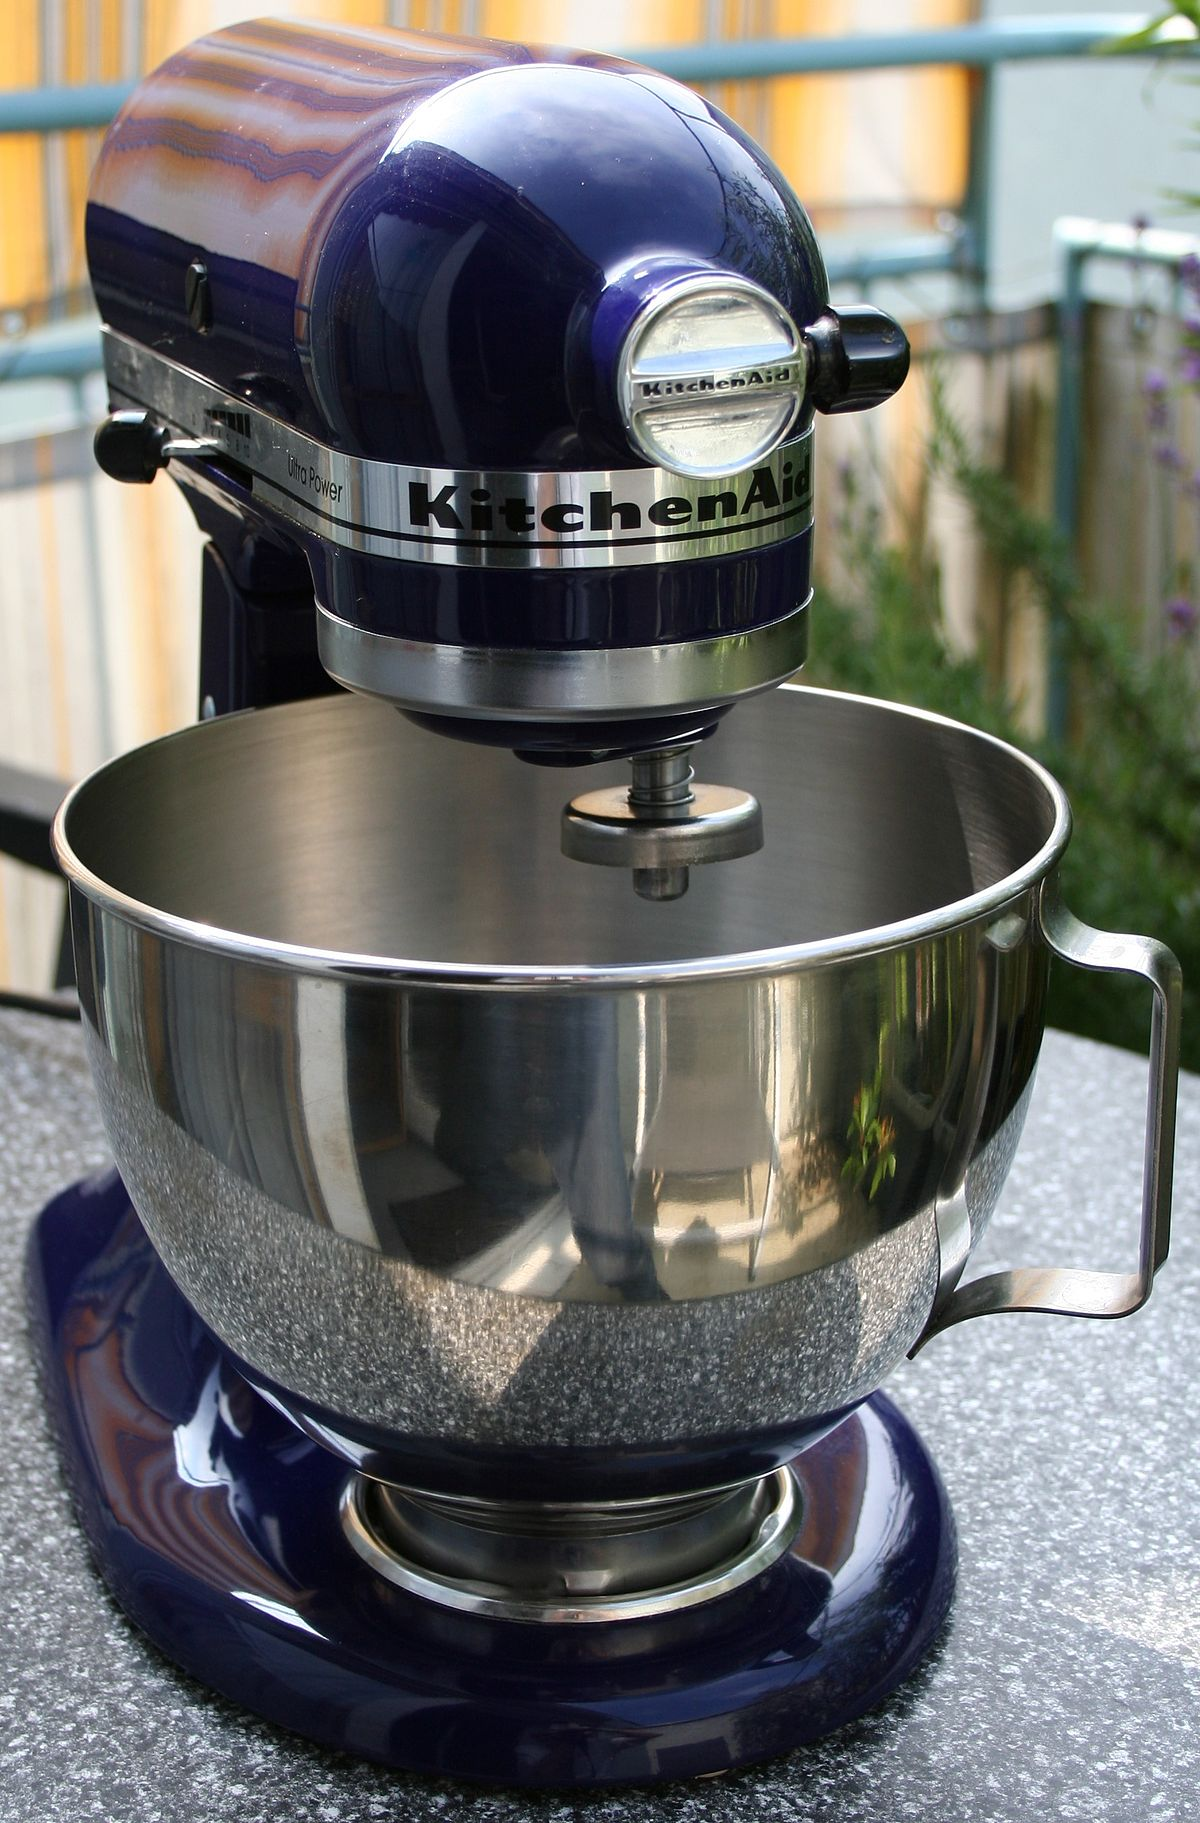 Kitchen Aid Mixer Model Ksmpssm Accesories